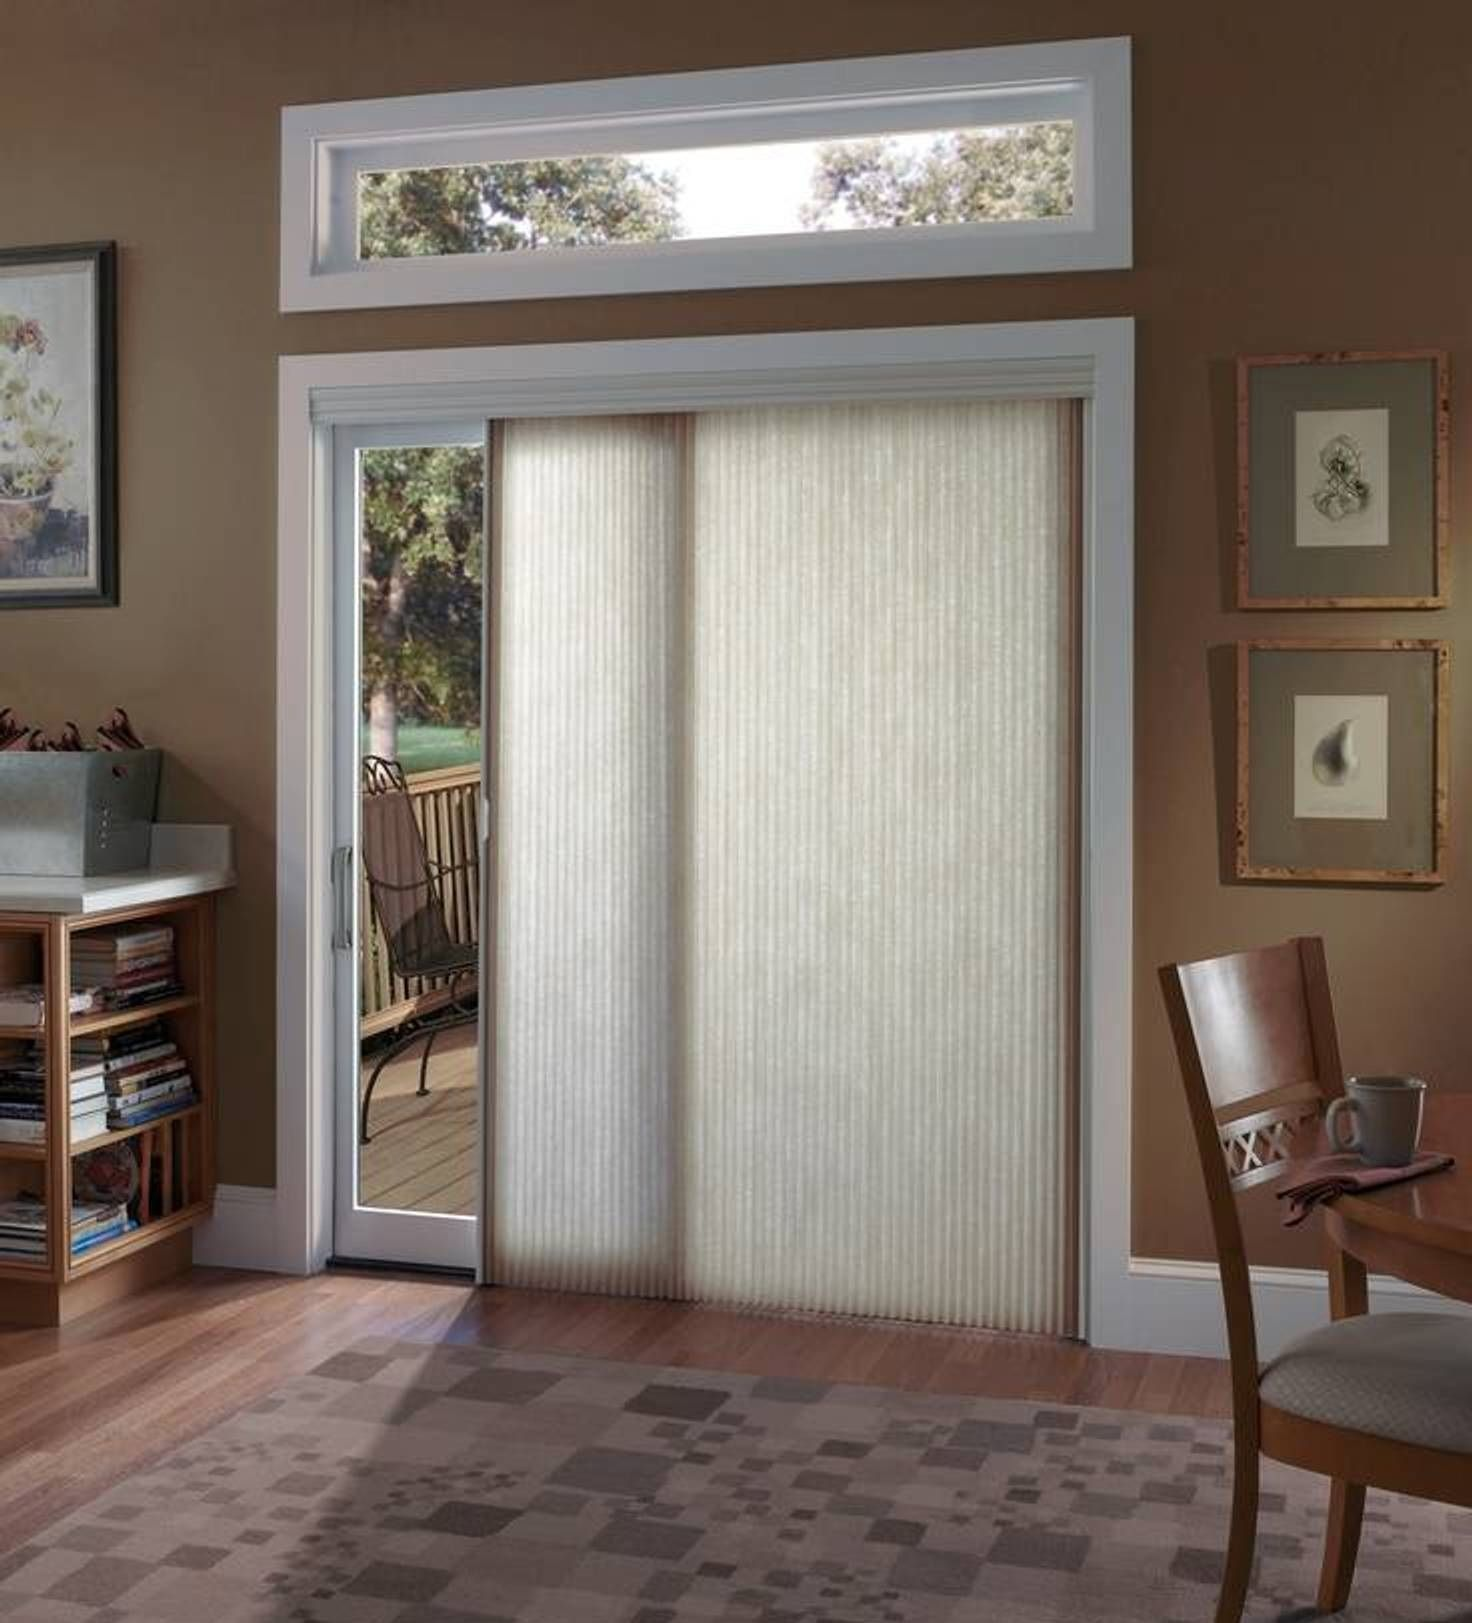 door patio window grande treatments alternative options sliding room